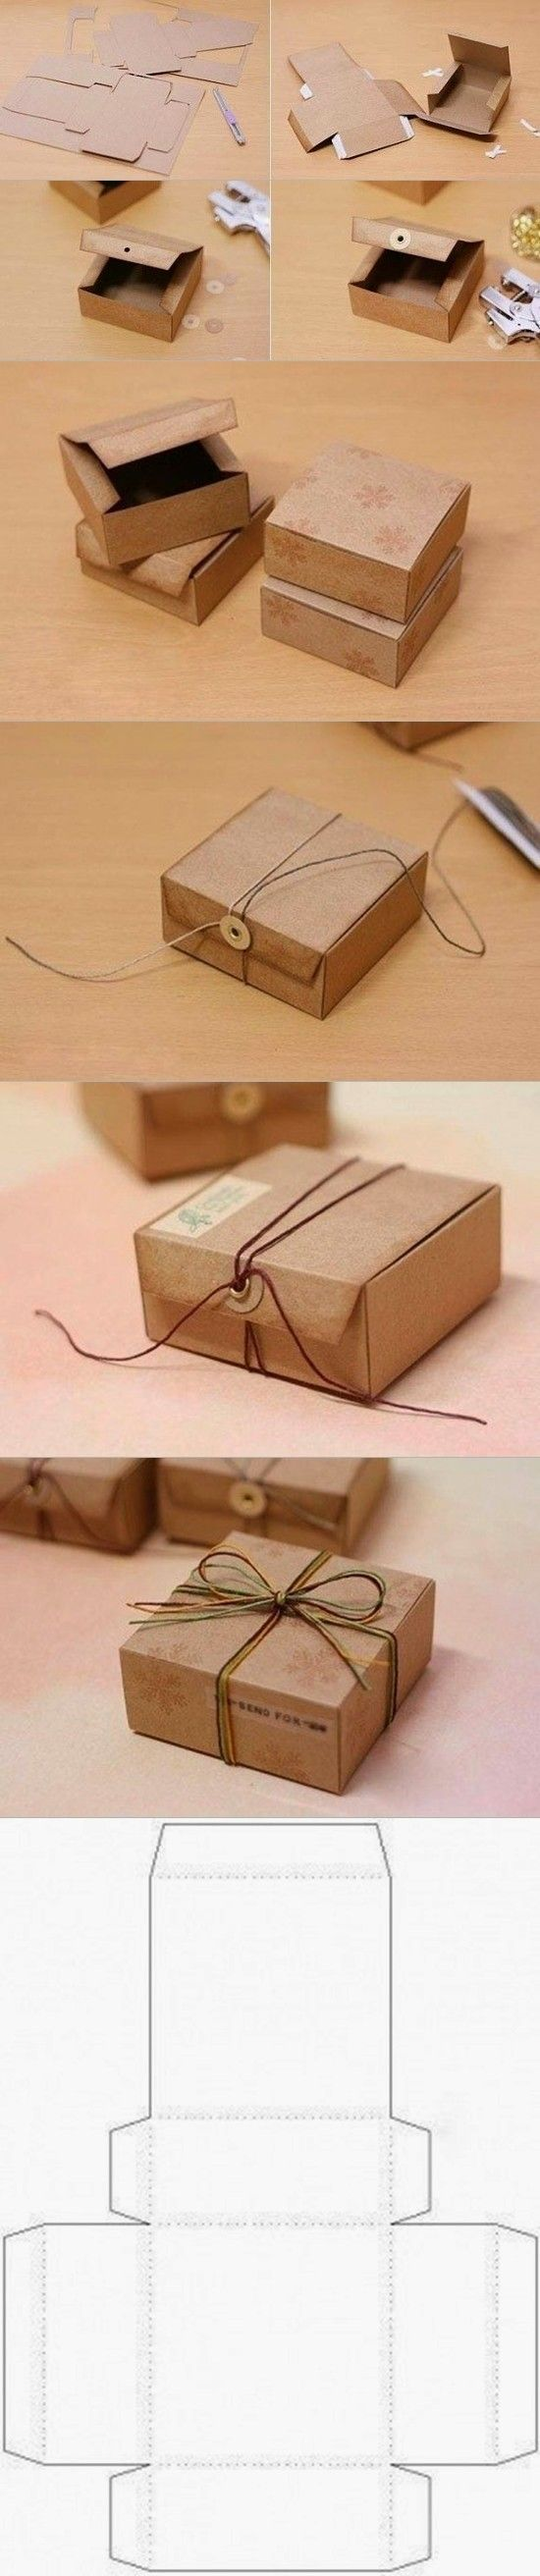 Fai da te: Gift Box da cartone - fai da te & Crafts Tutorial